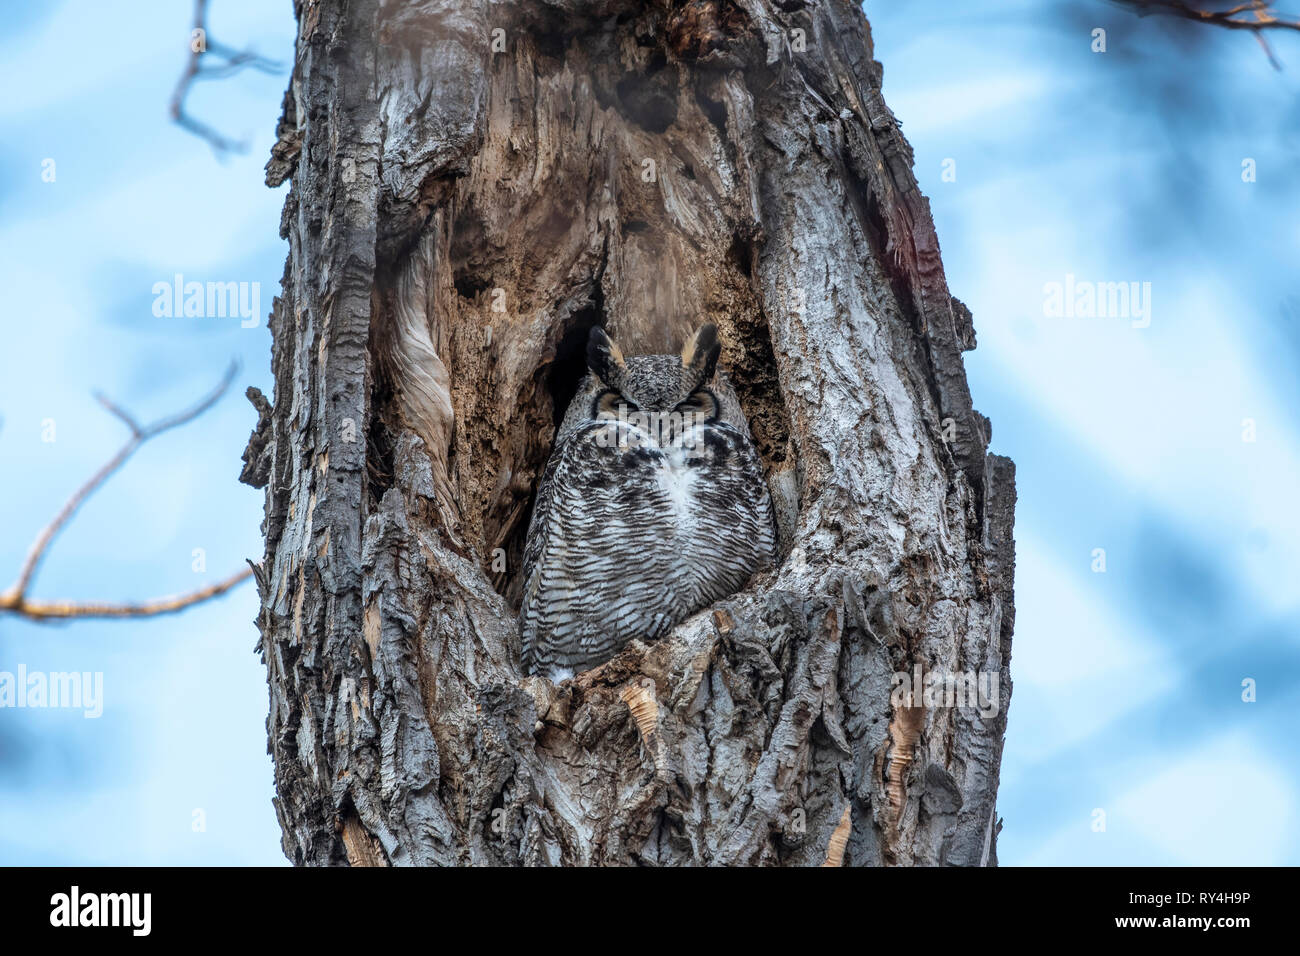 Great Horned Owl in a tree hole Stock Photo